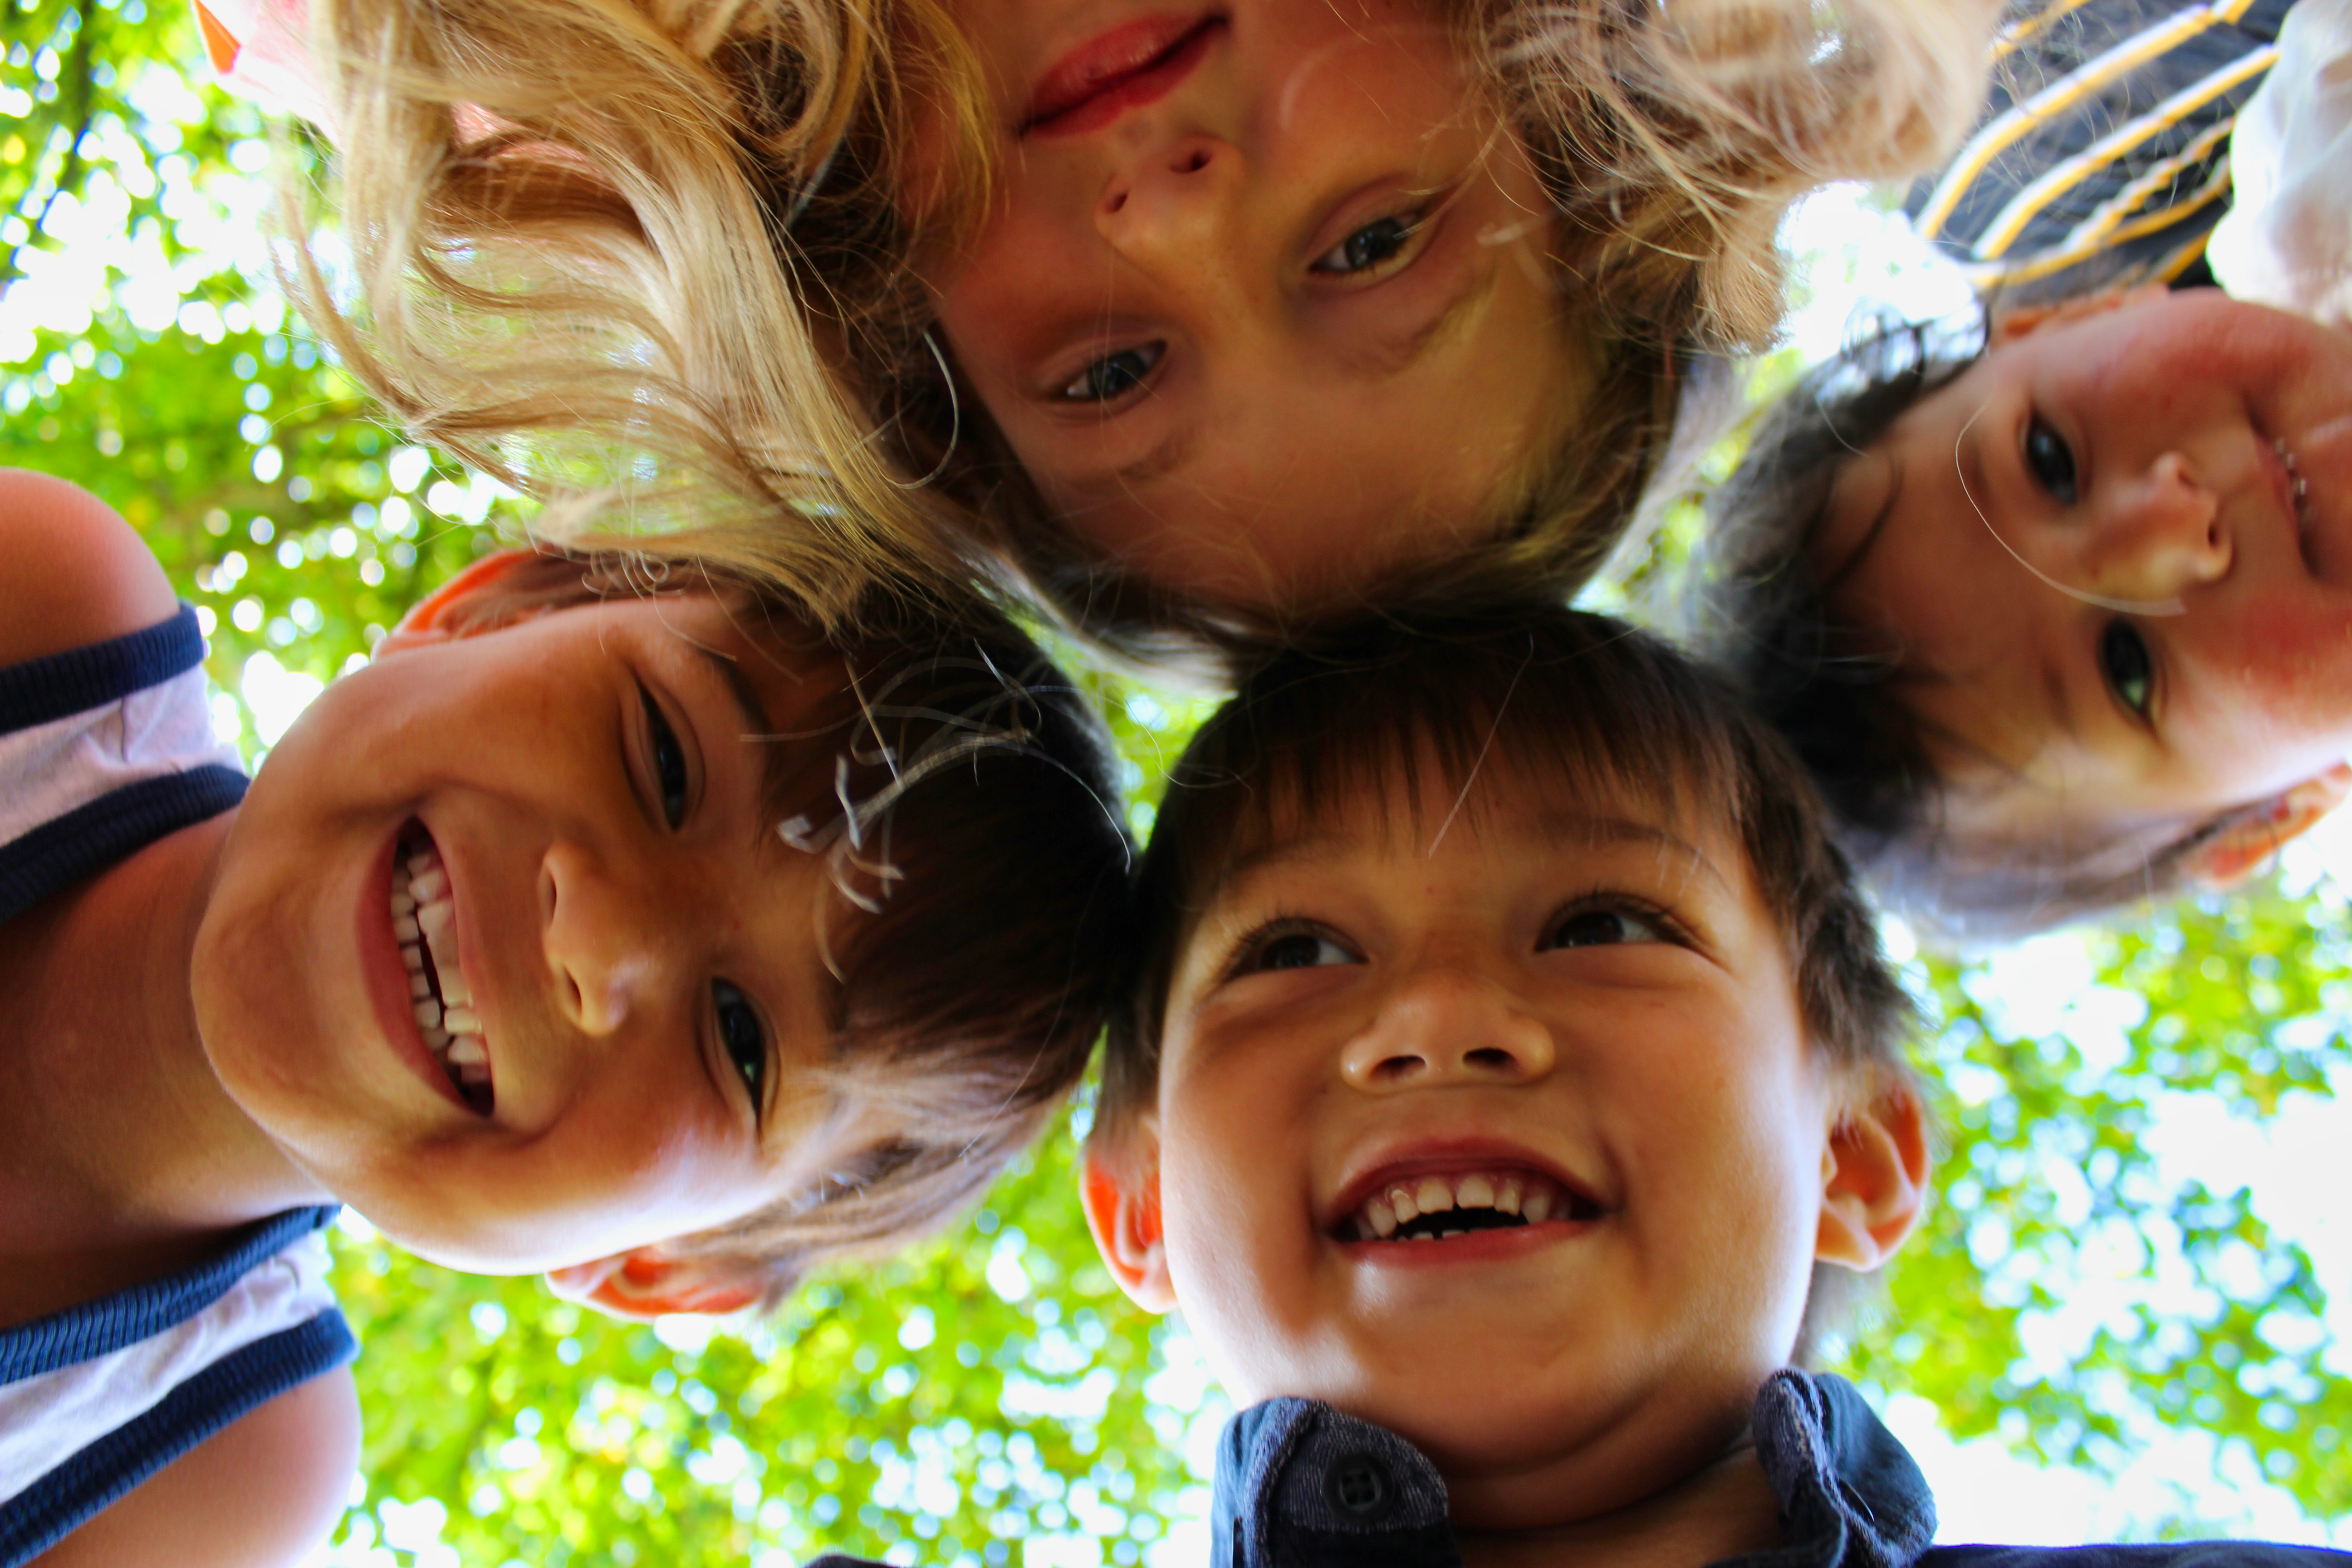 3 young boys and a girl in a circle looking down and laughing while trees over hang